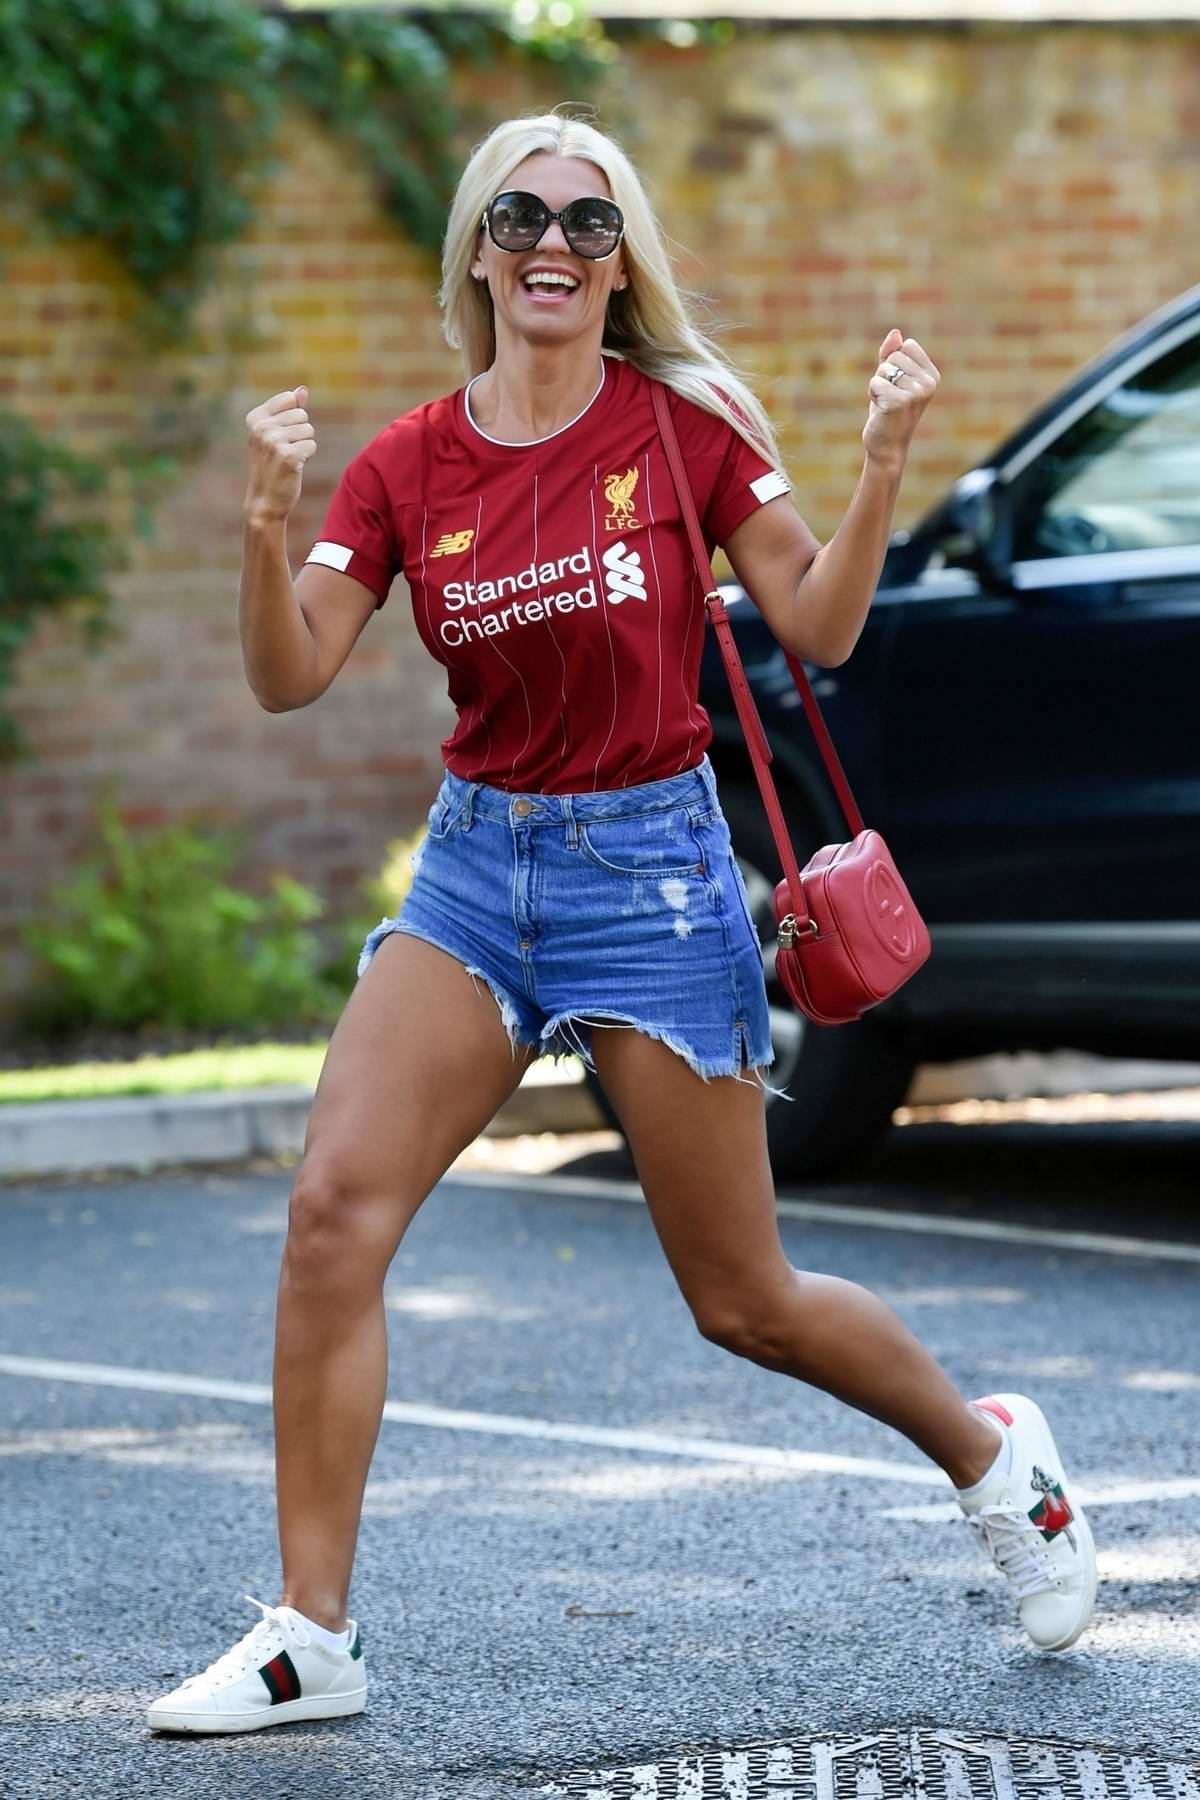 Christine McGuinness looks ecstatic as she celebrates Liverpool FC winning the EPL for the first time in 30 years, Cheshire, UK